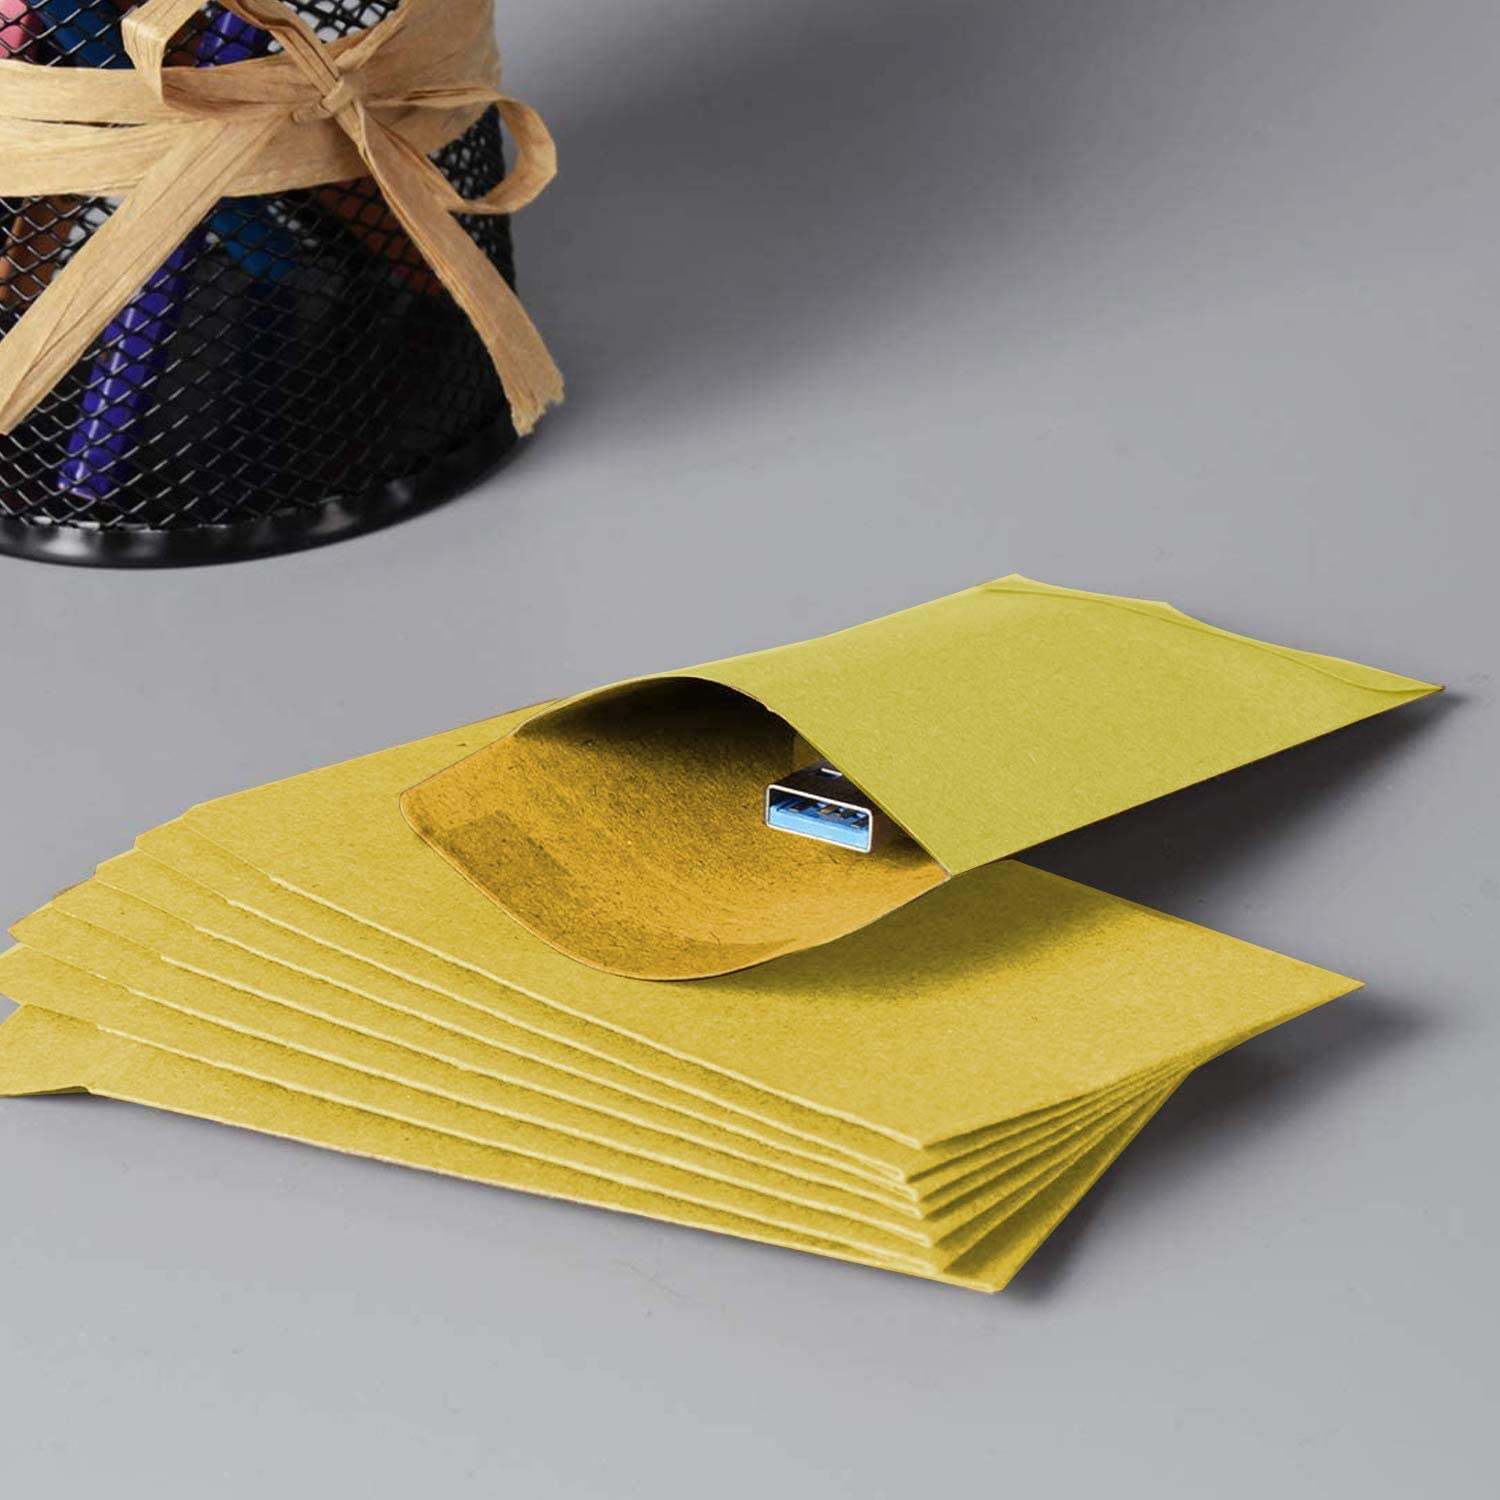 Paper Envelope Jewelry Seeds Office or Wedding Gifts 6cm /× 9cm Stamps or Small Parts 100 Mini Kraft envelopes Seed Envelope Suitable for Garden Can Store Coins